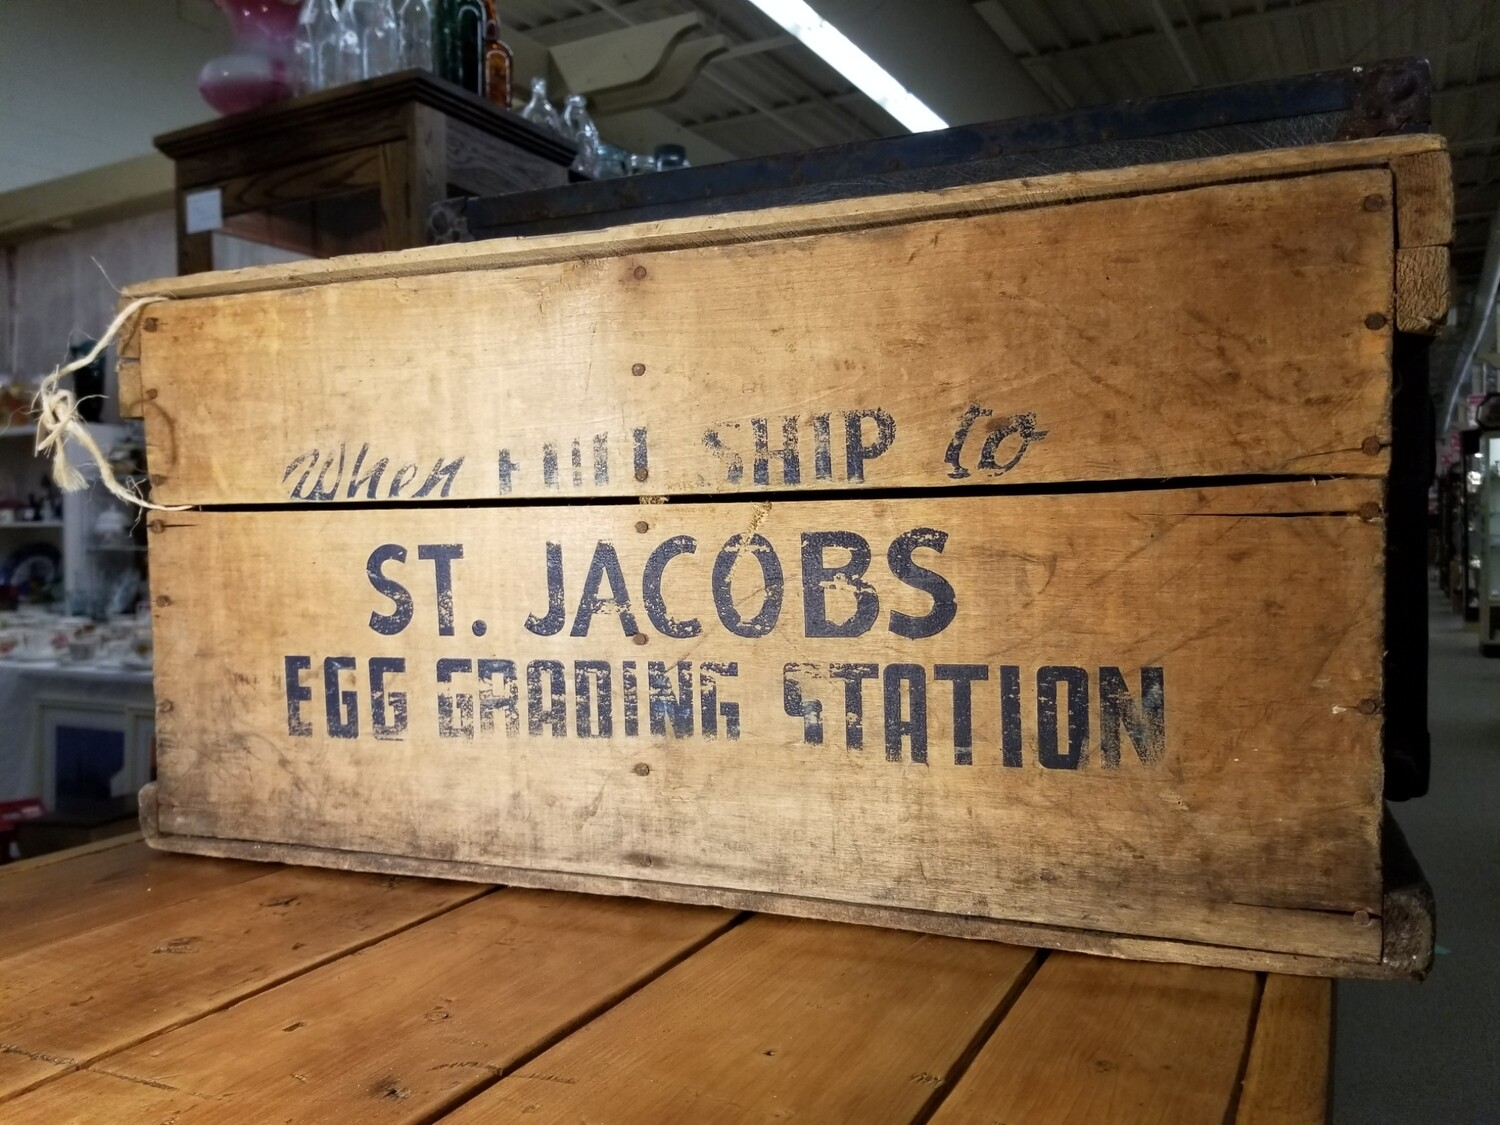 St. Jacobs Egg Crate